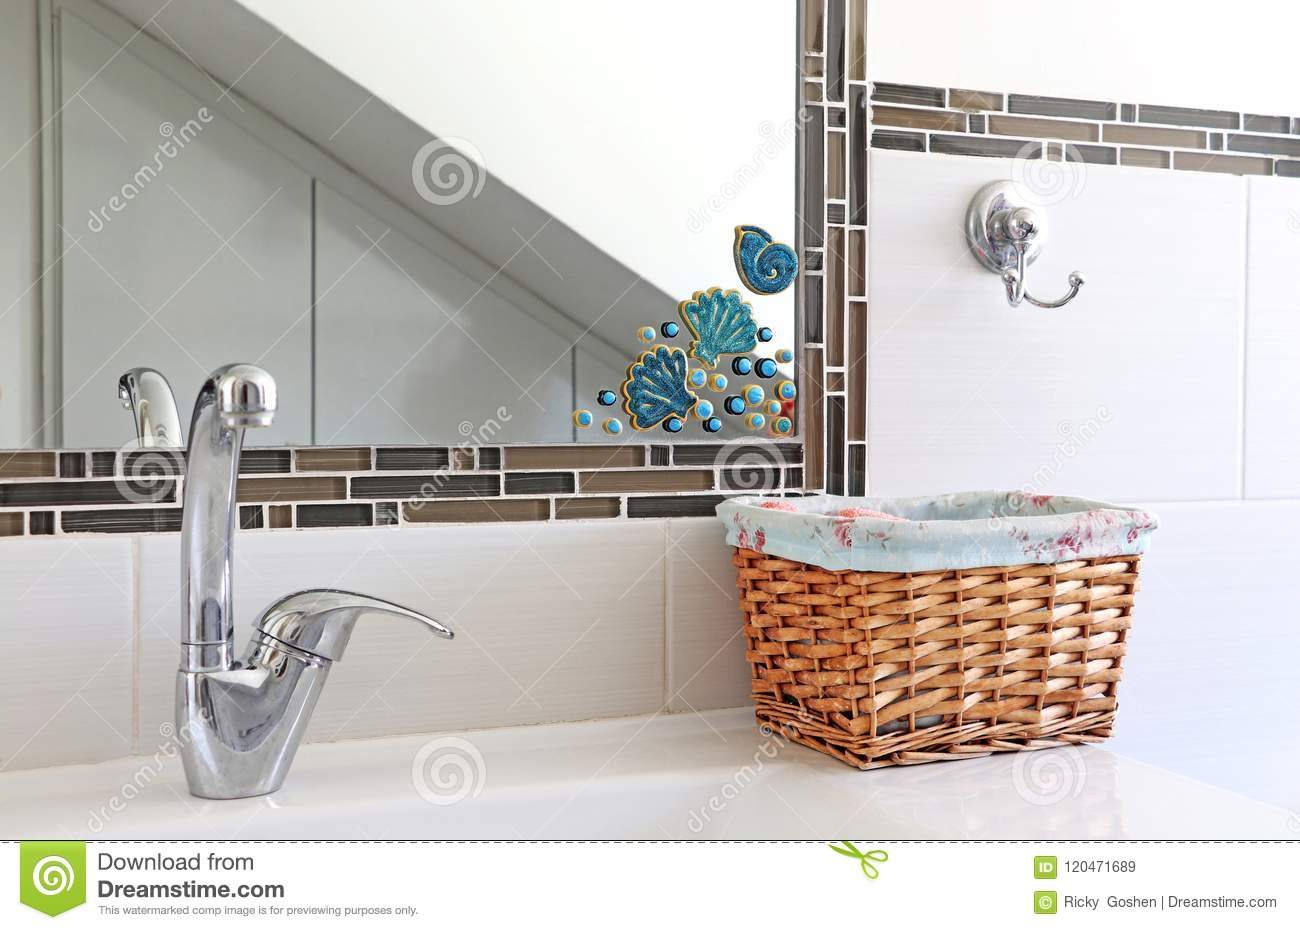 Faucet, Mirror, Basket For Towels